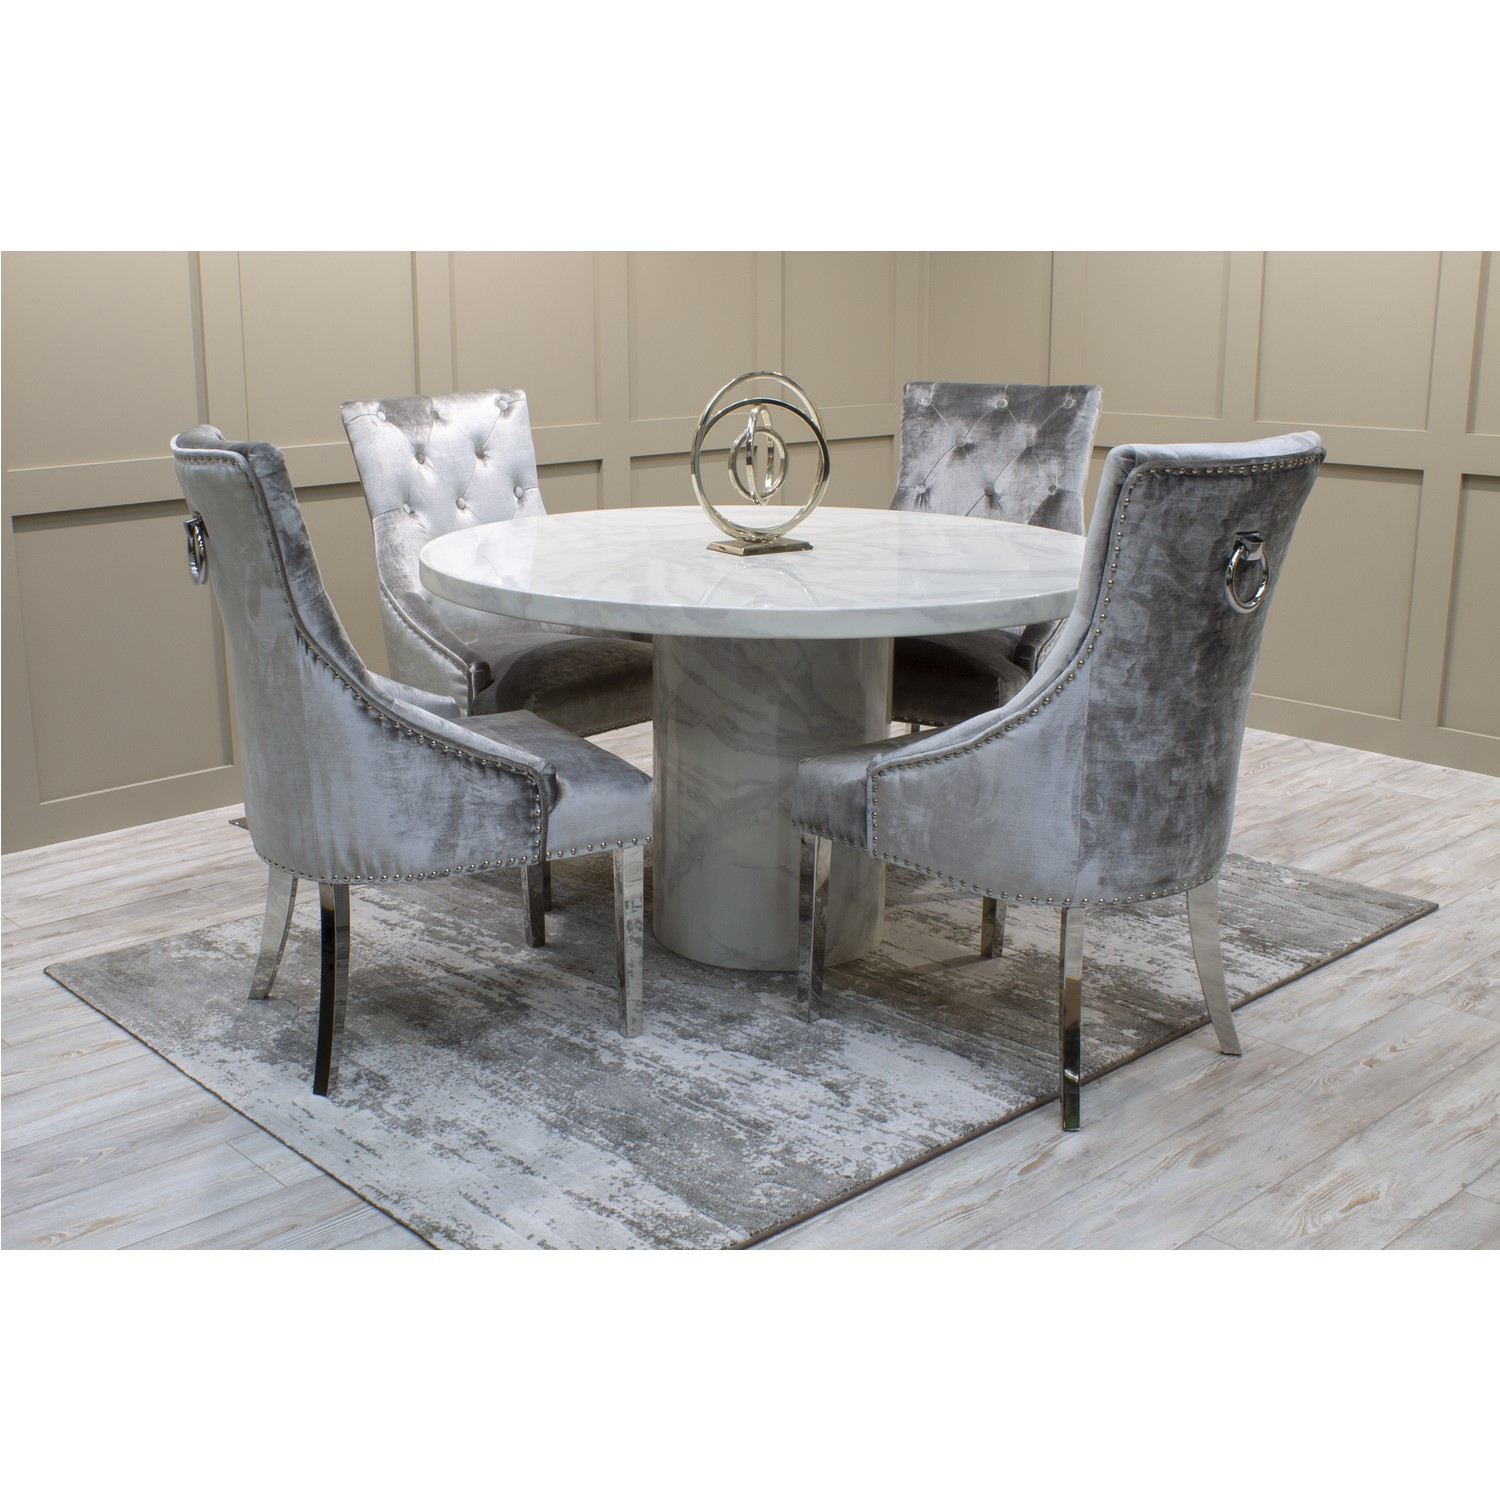 Vida Living Carra Marble Round Dining Table with 4 Grey Dining Chairs in Grey